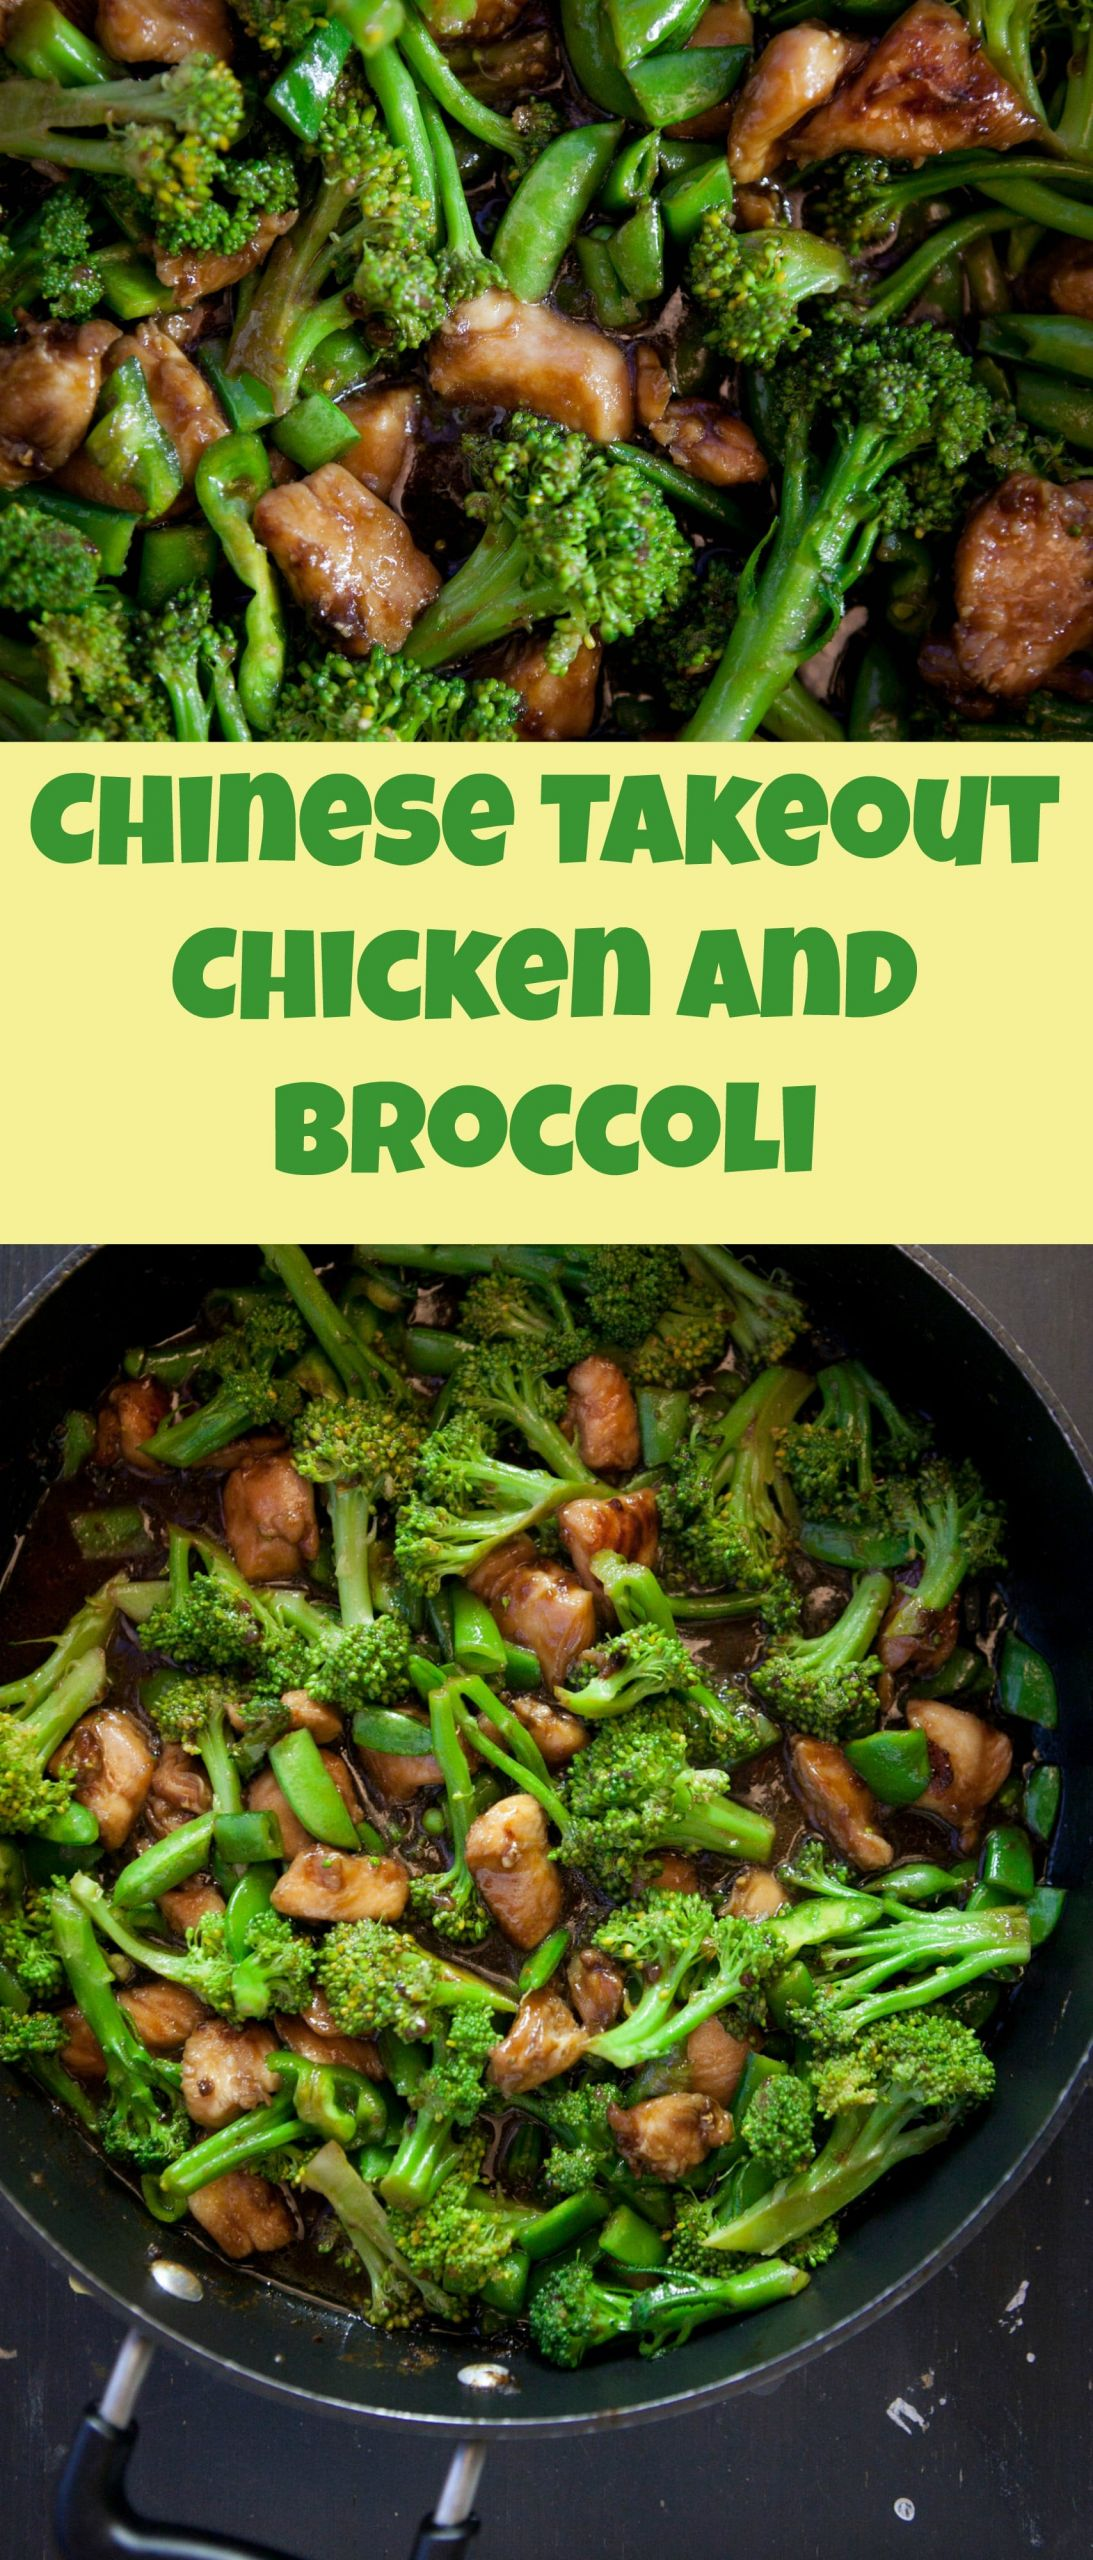 Chinese Chicken And Broccoli Recipes  Chinese Takeout Chicken and Broccoli Brooklyn Farm Girl